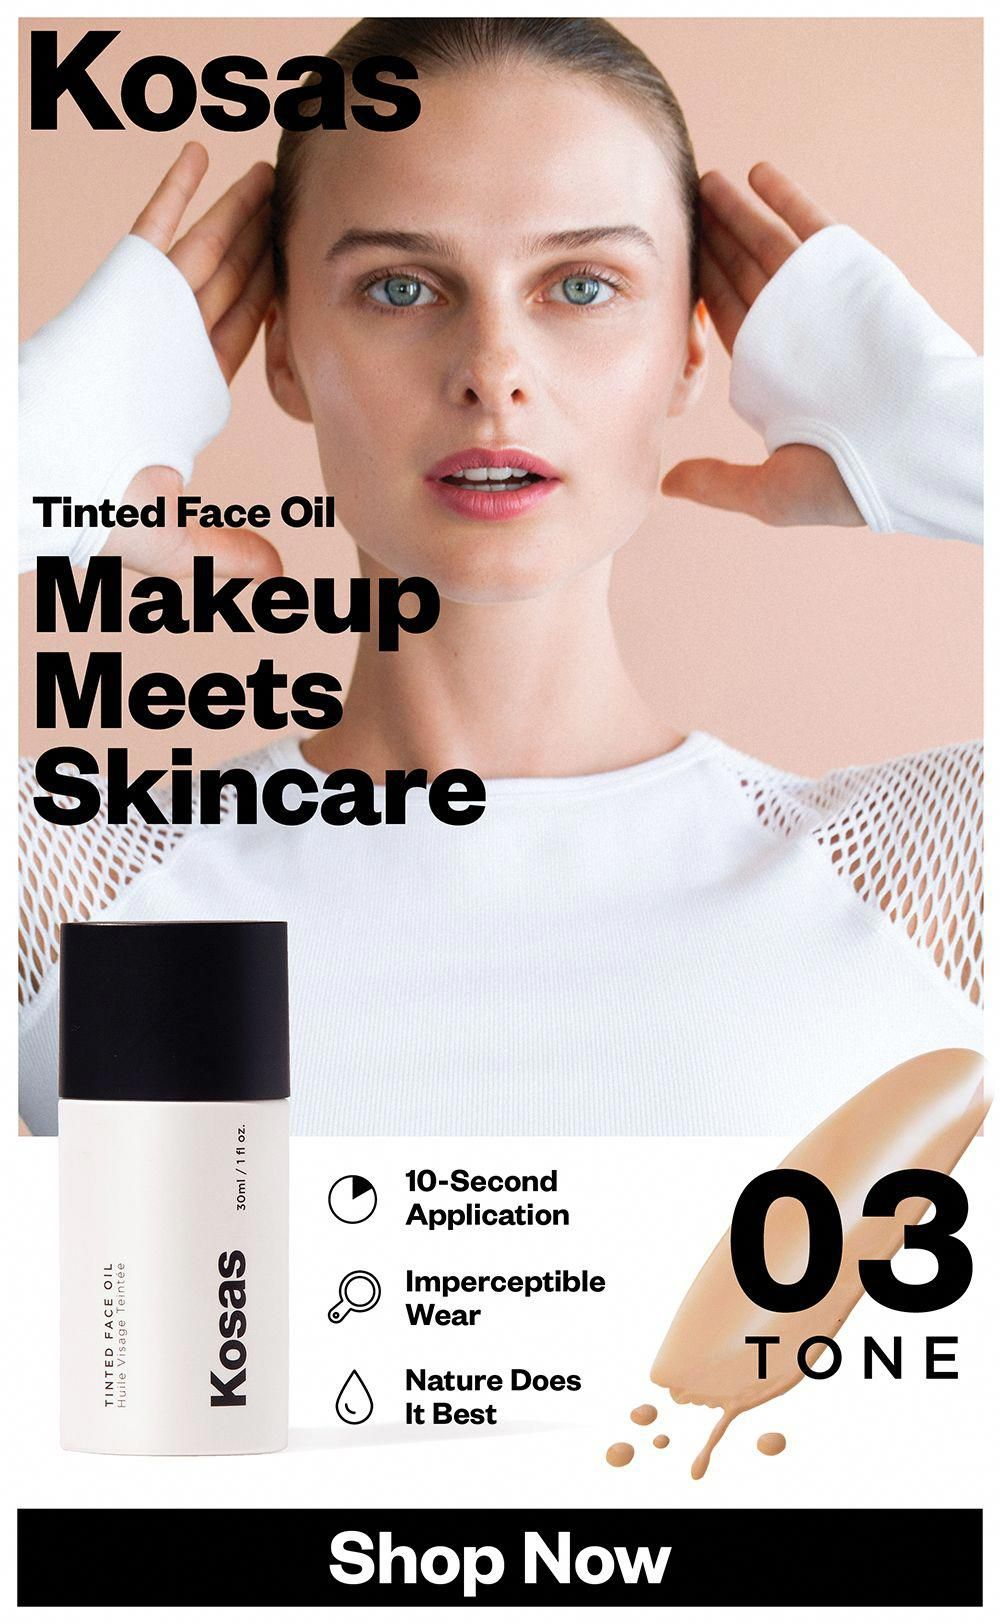 Tinted Face Oil Foundation in 2020 Face oil, Brown spots